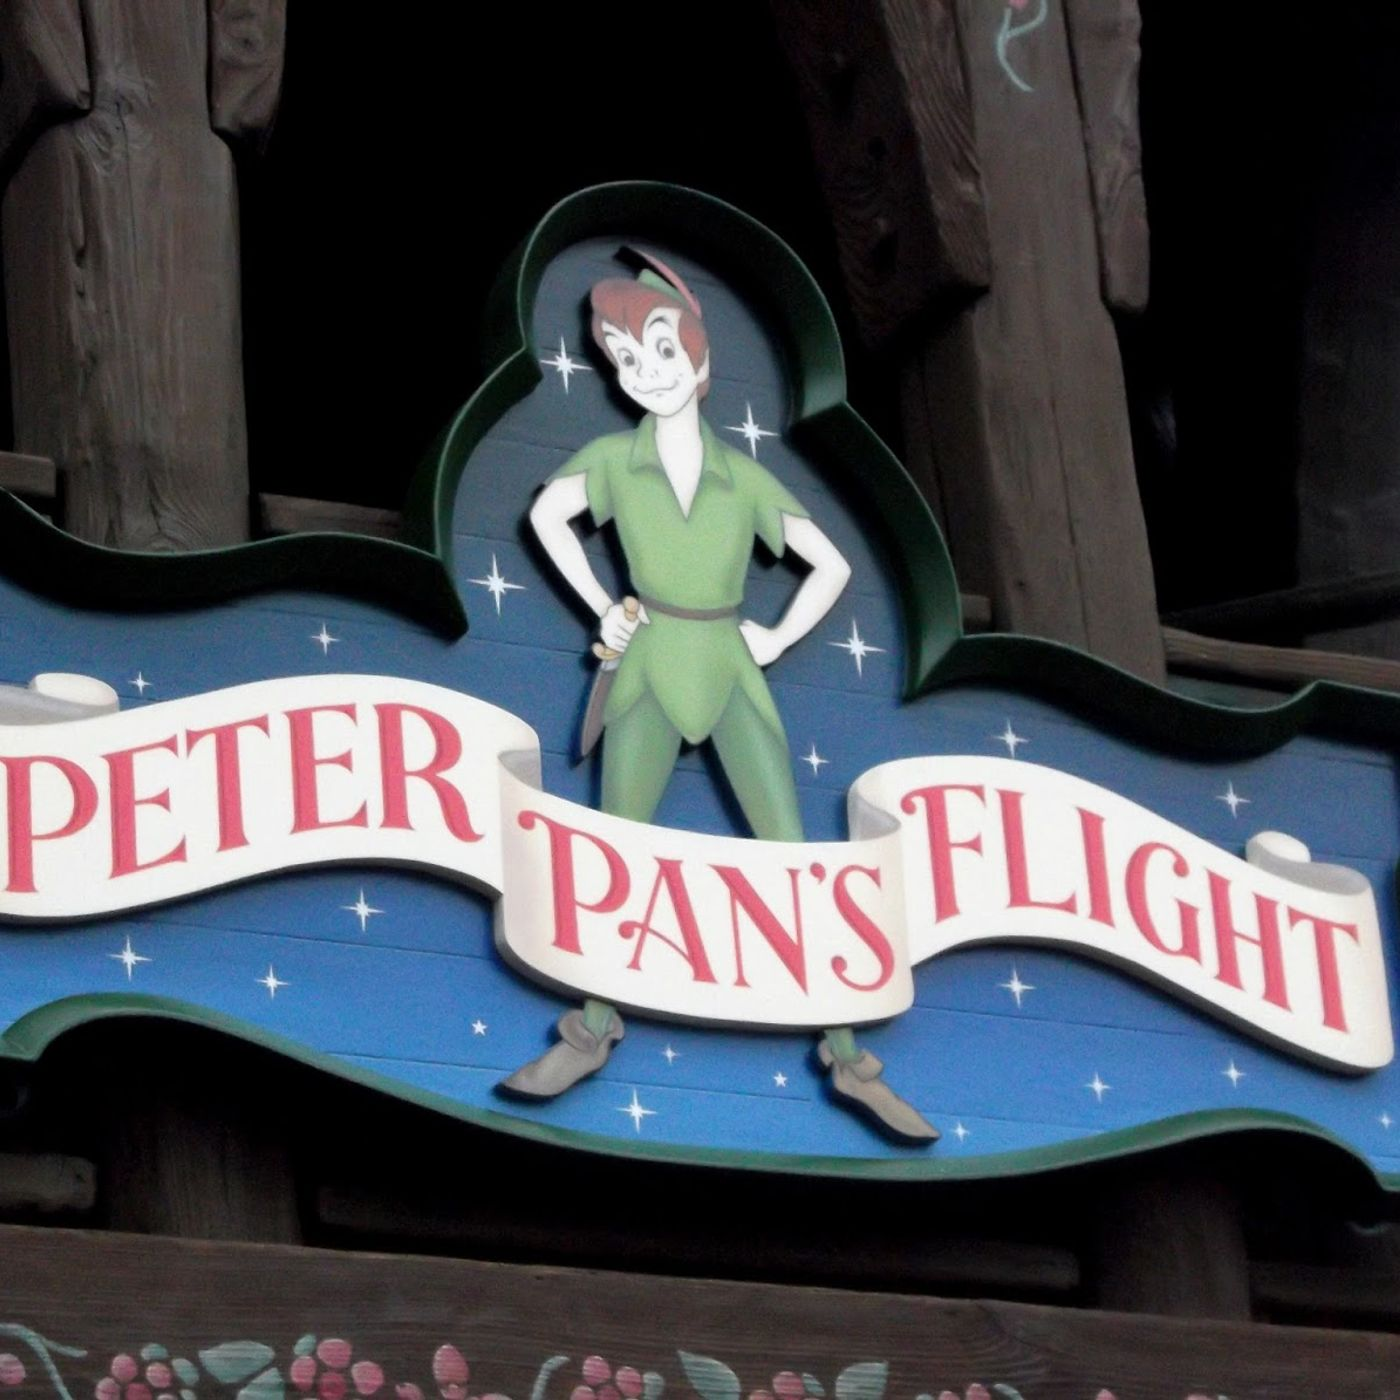 S2 Ep.7 : Peter Pan's Flight (Parks Edition)